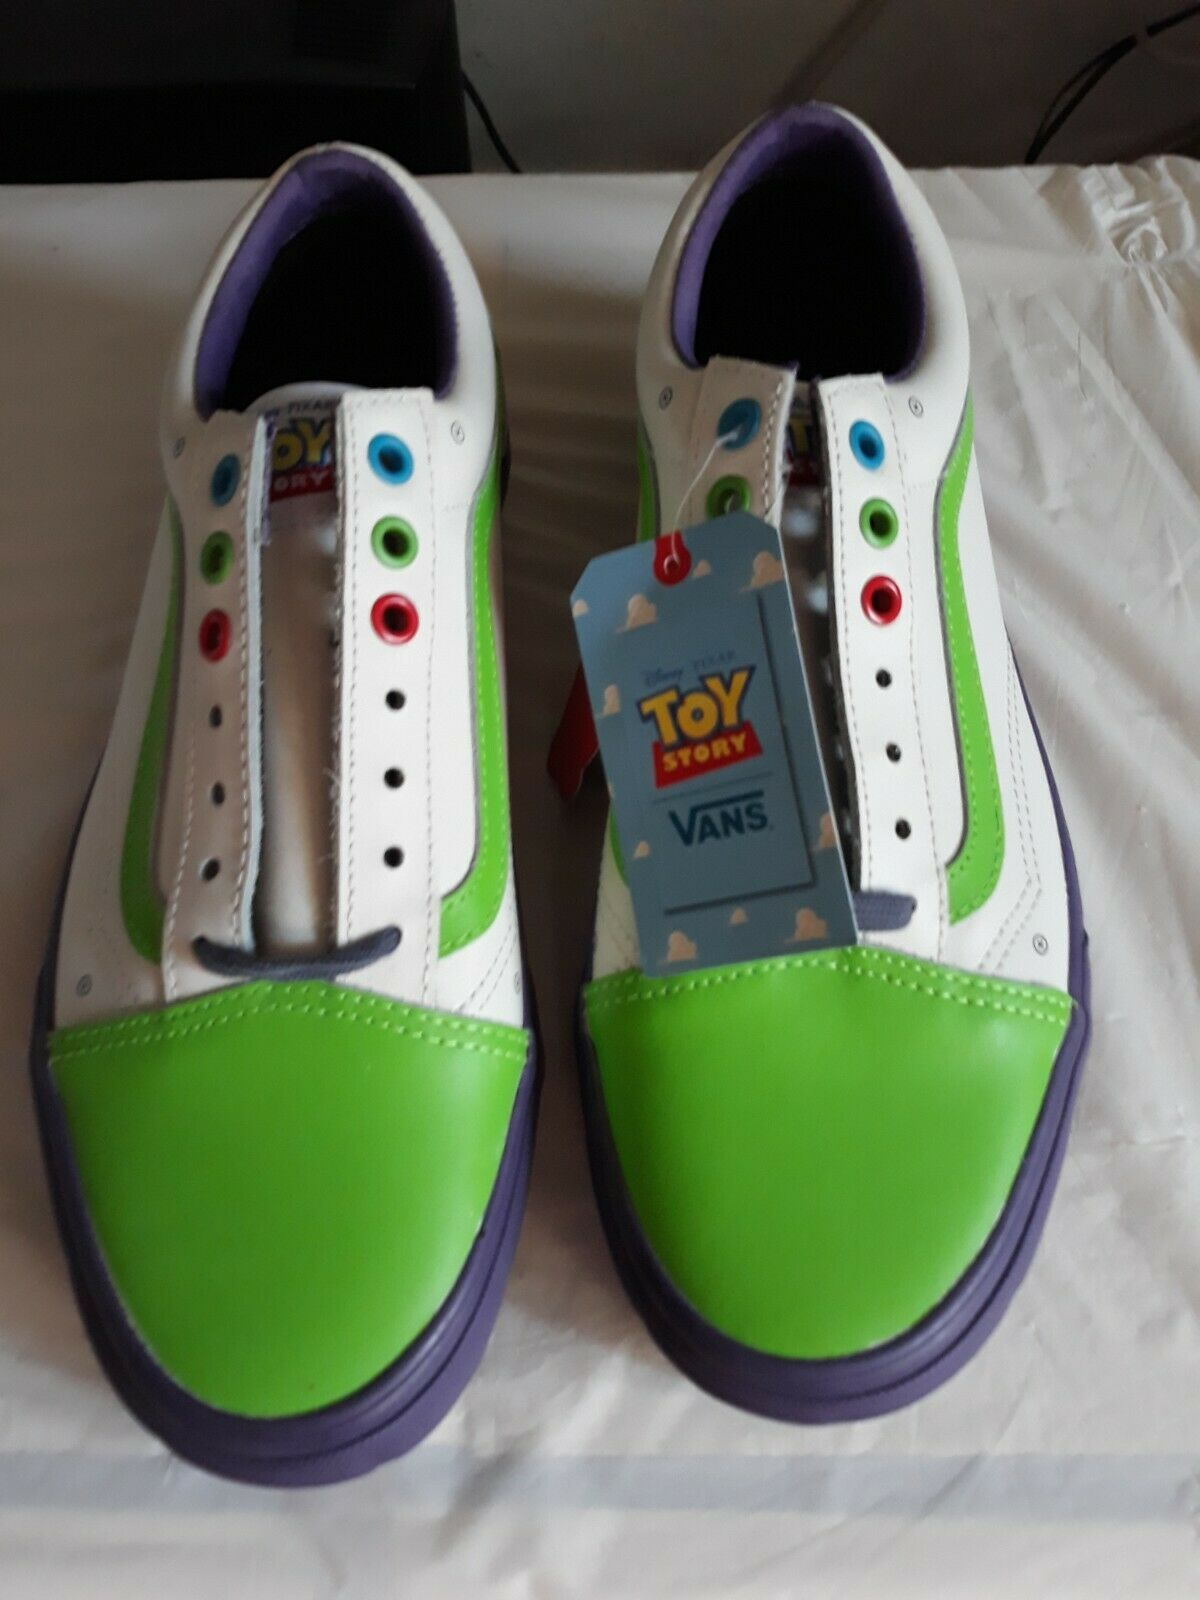 Vans Disney Toy Story Buzz Light year limited edition shoes